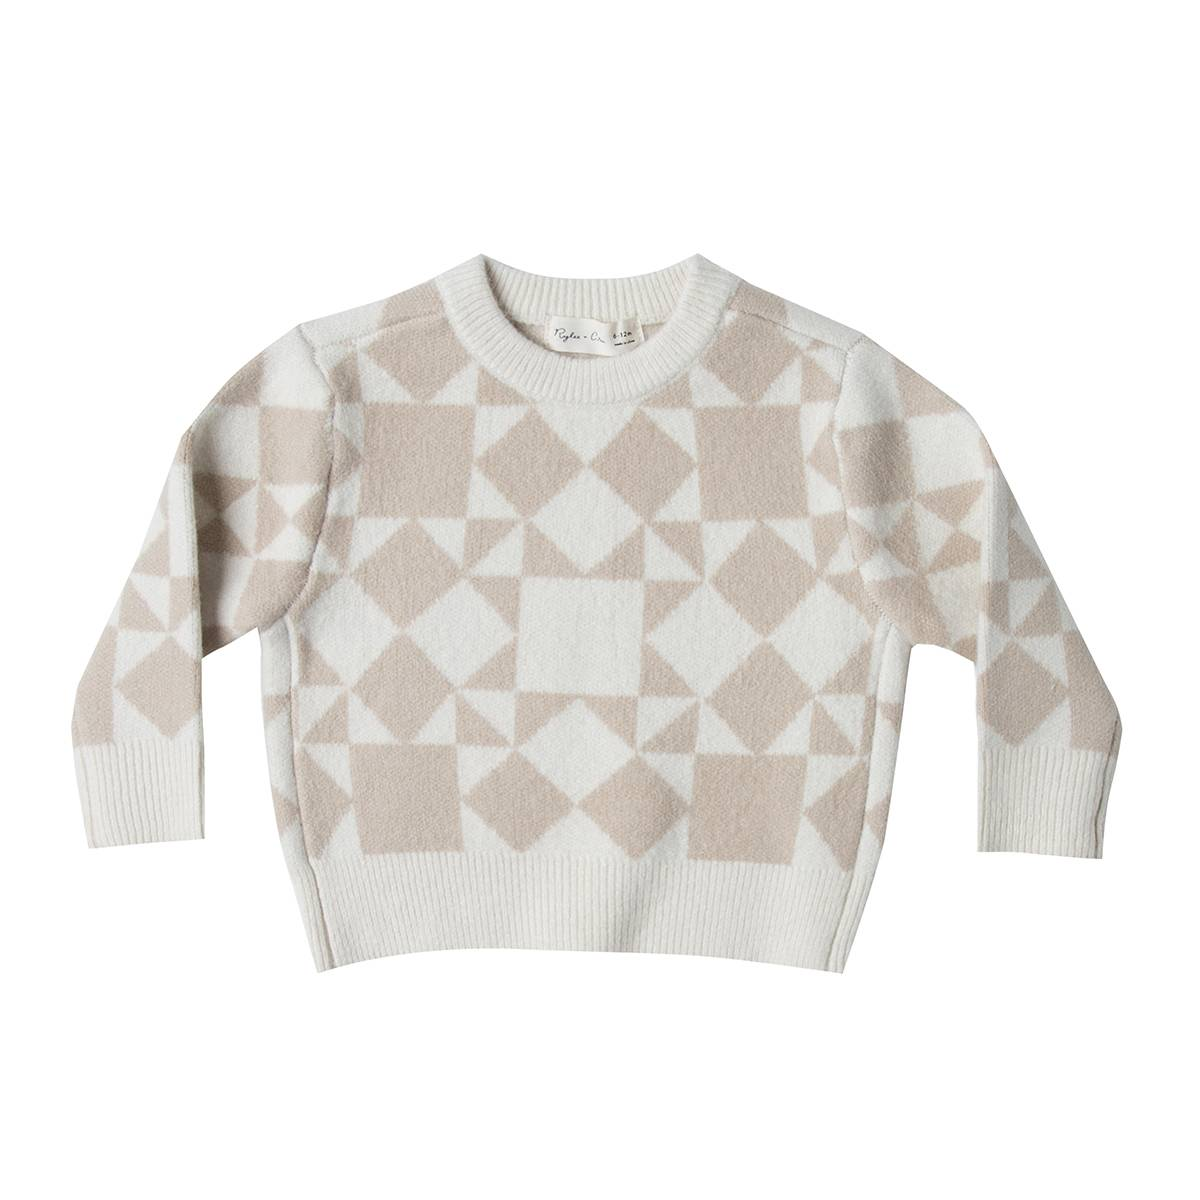 Rylee + Cru Pullover Jacquard Ivoire - 6/12 Mois